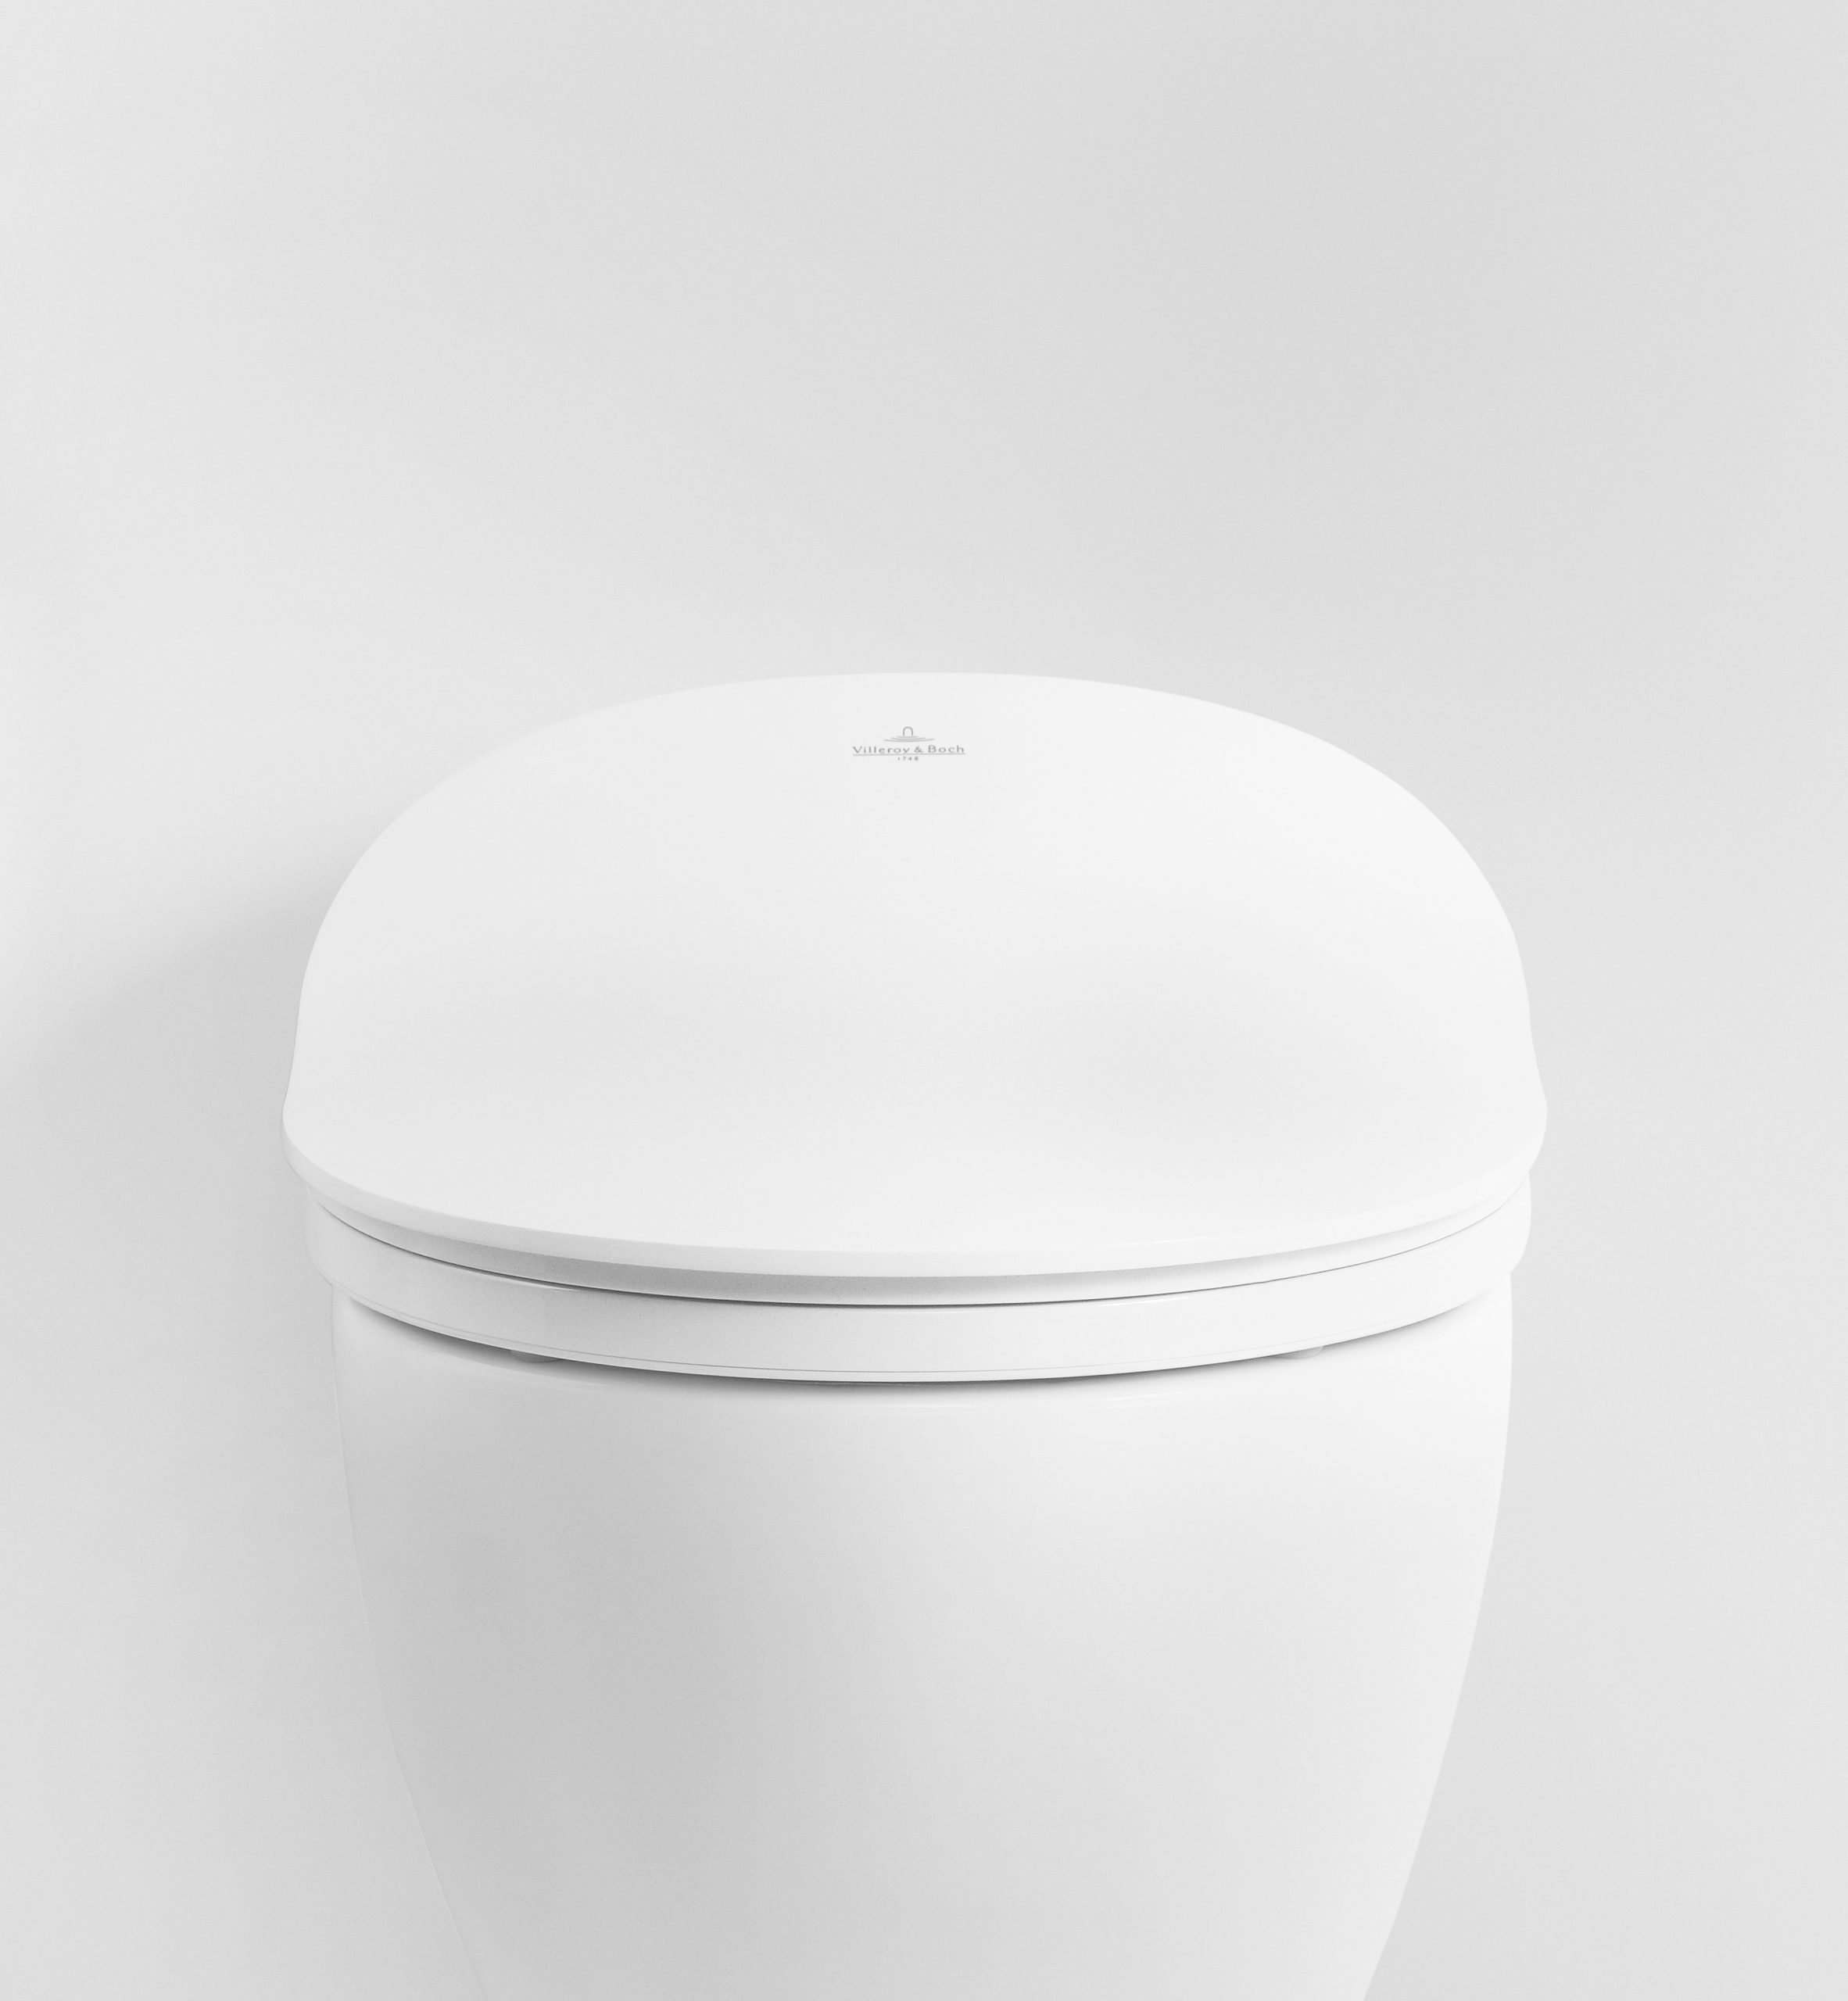 Front view of ViClean electronic Bidet by Debiasi sandri for Villeroy and Boch